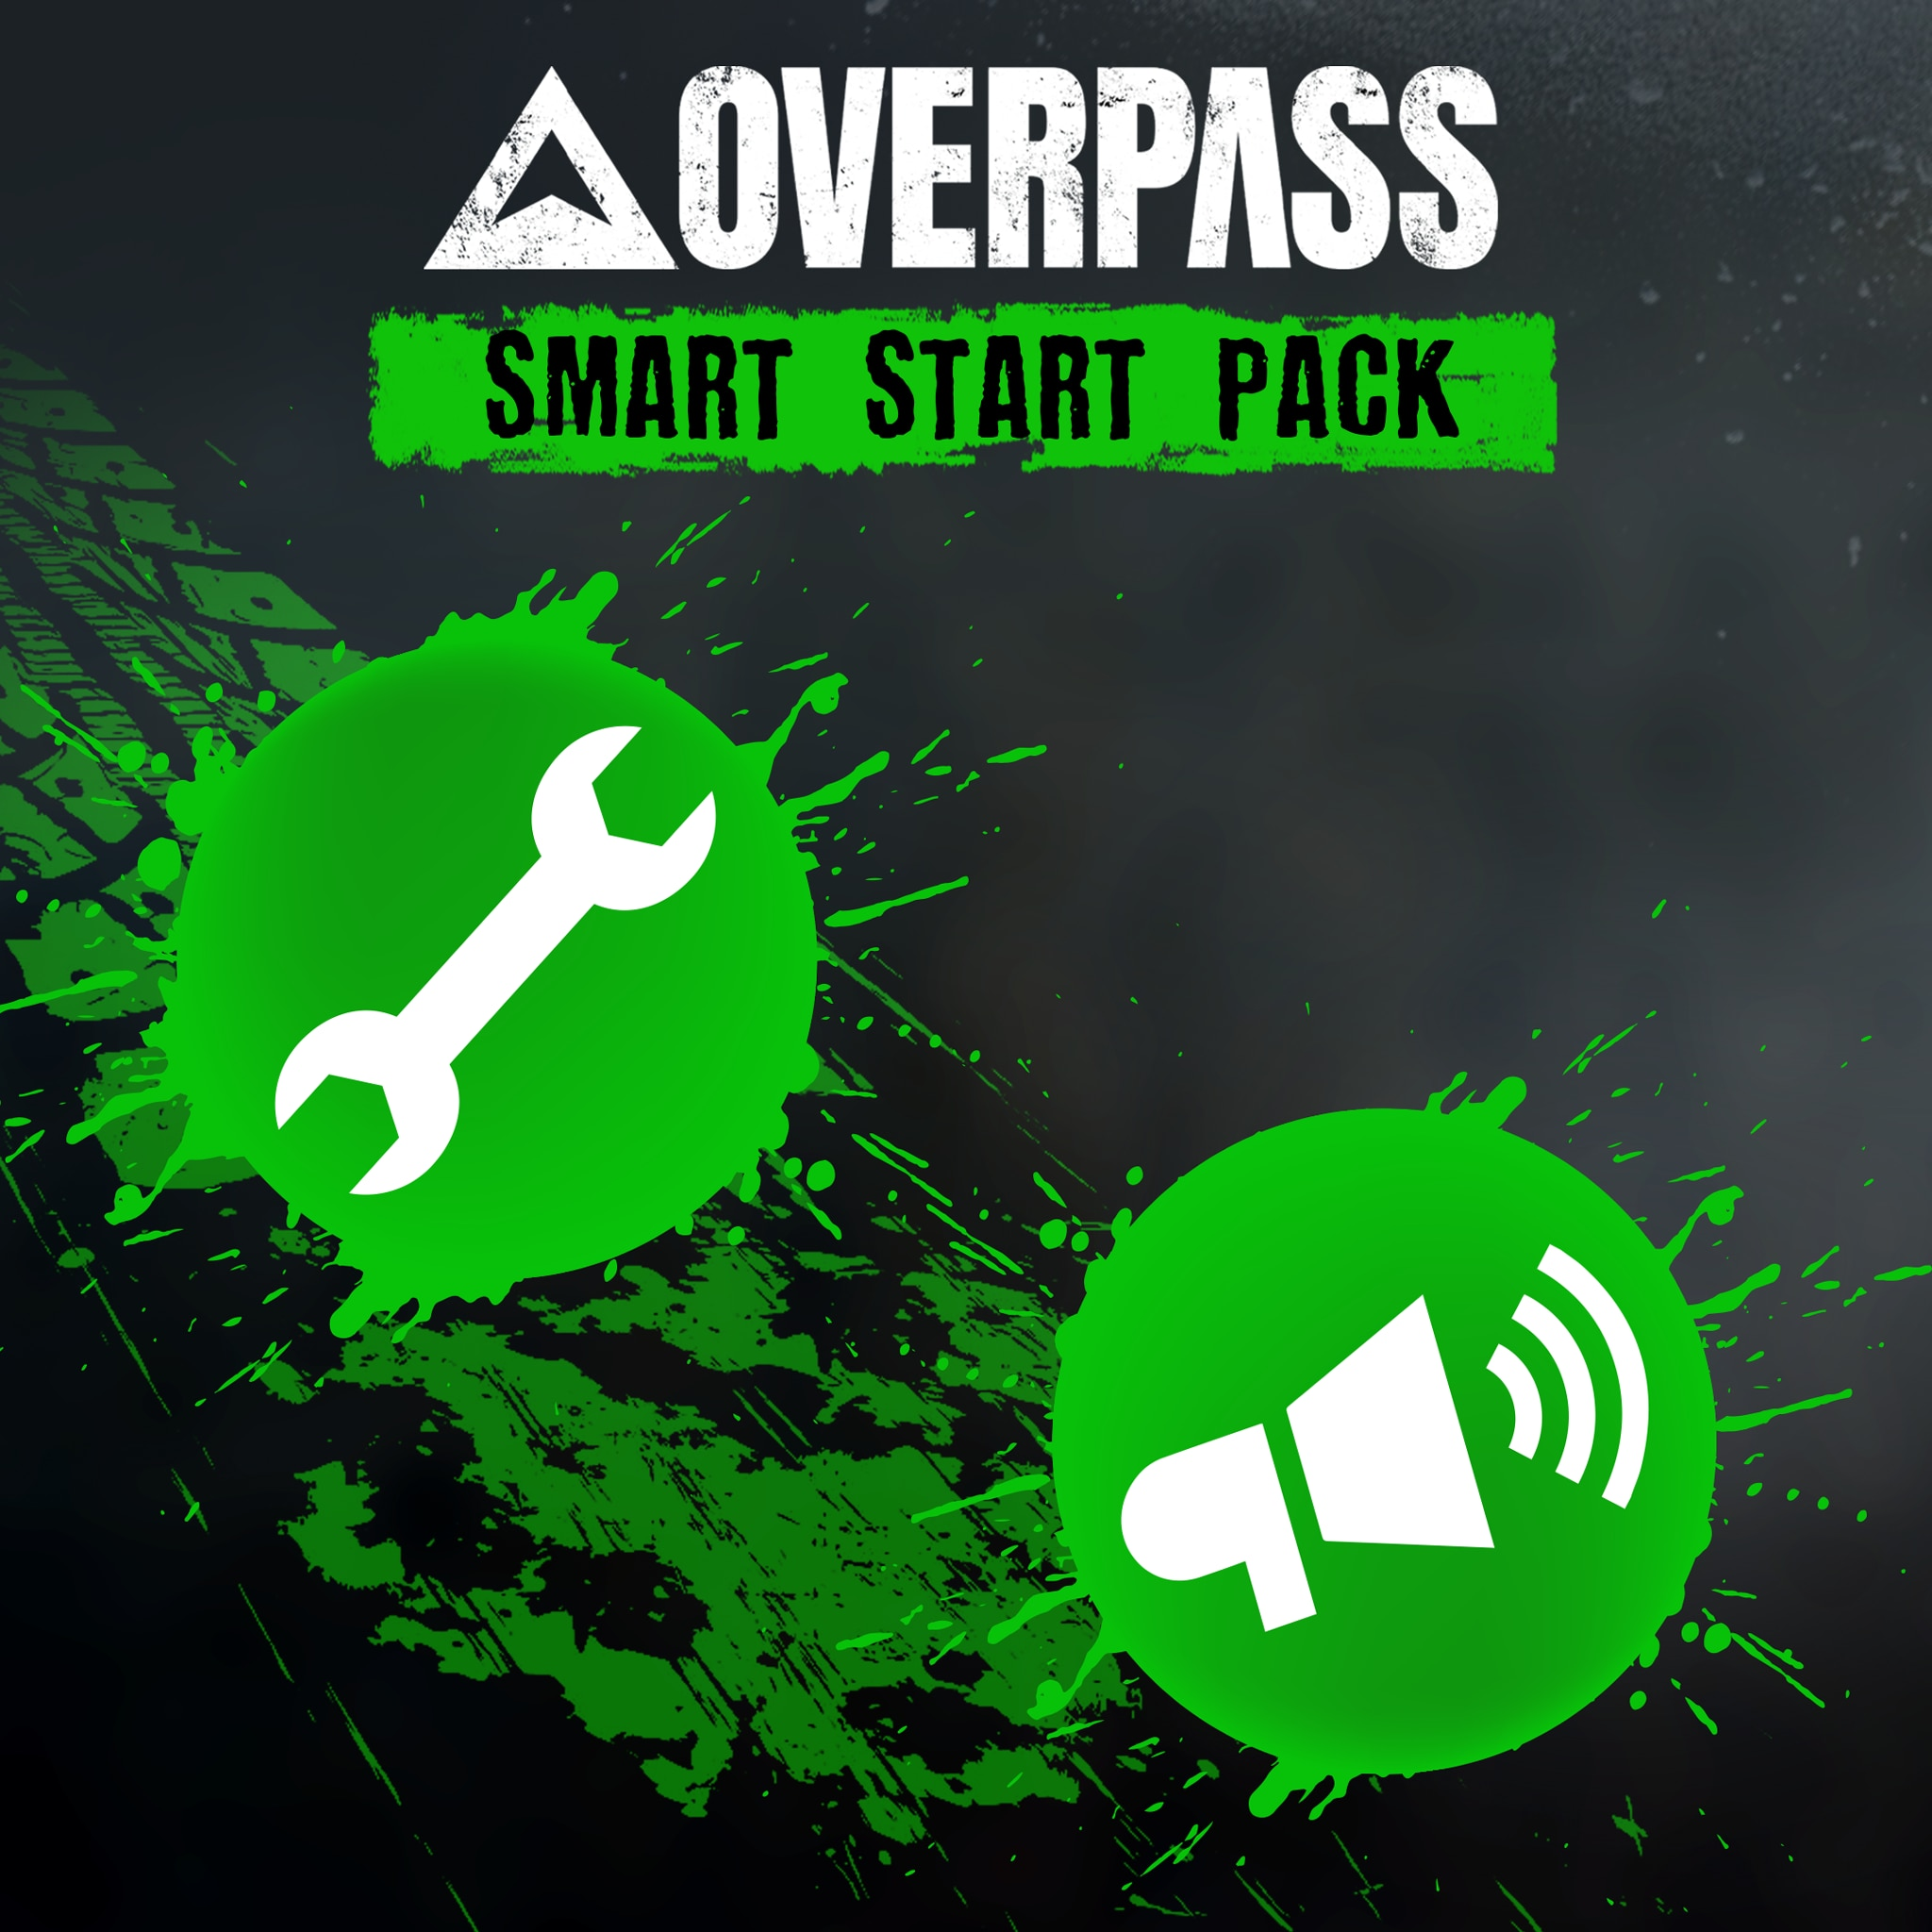 OVERPASS™ Smart Start Pack